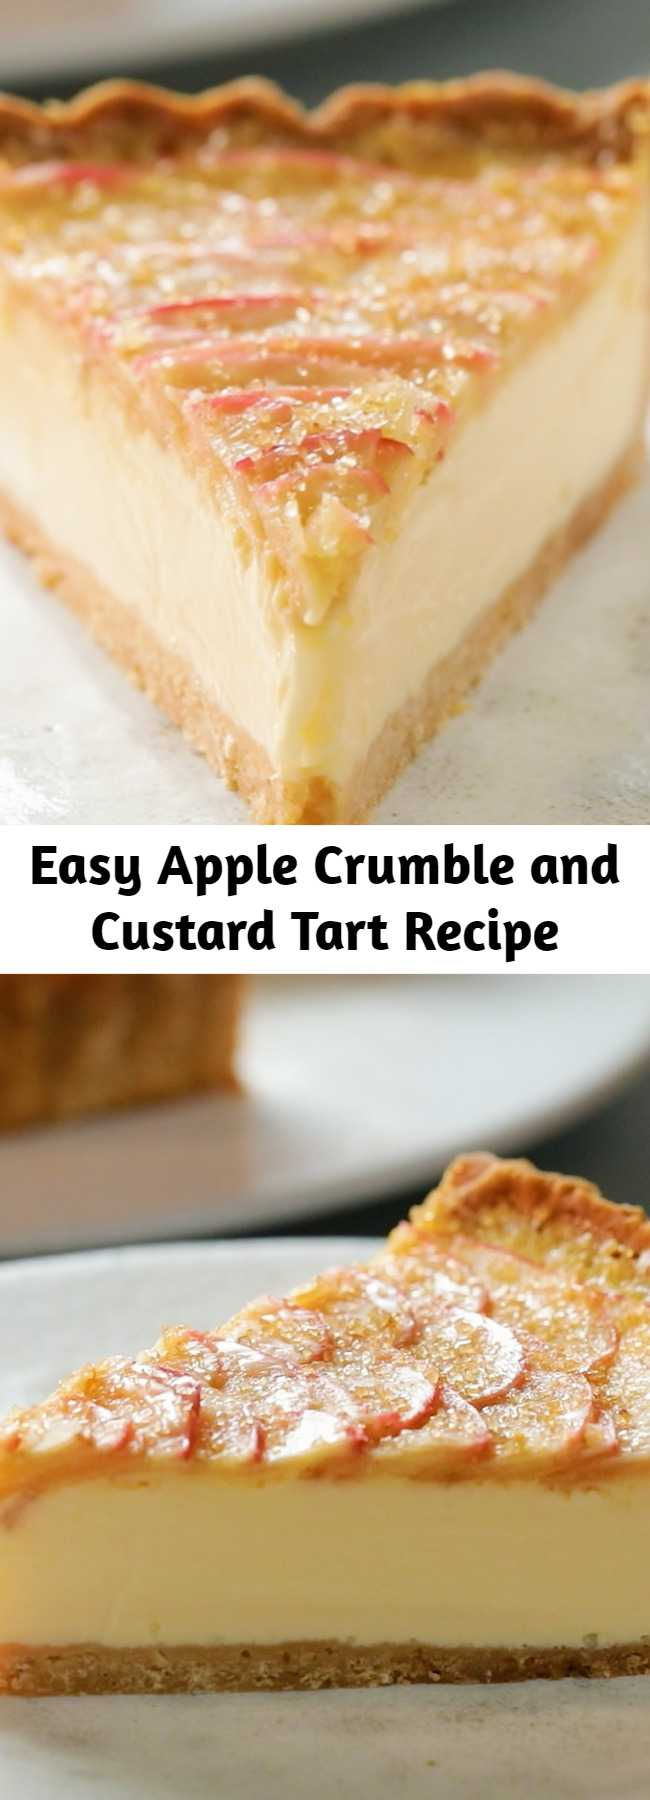 Easy Apple Crumble and Custard Tart Recipe - Ever wondered what an apple crumble tart would taste like with a custard filling? This easy recipe will become your best go-to dessert for any occasion, summer and fall alike.